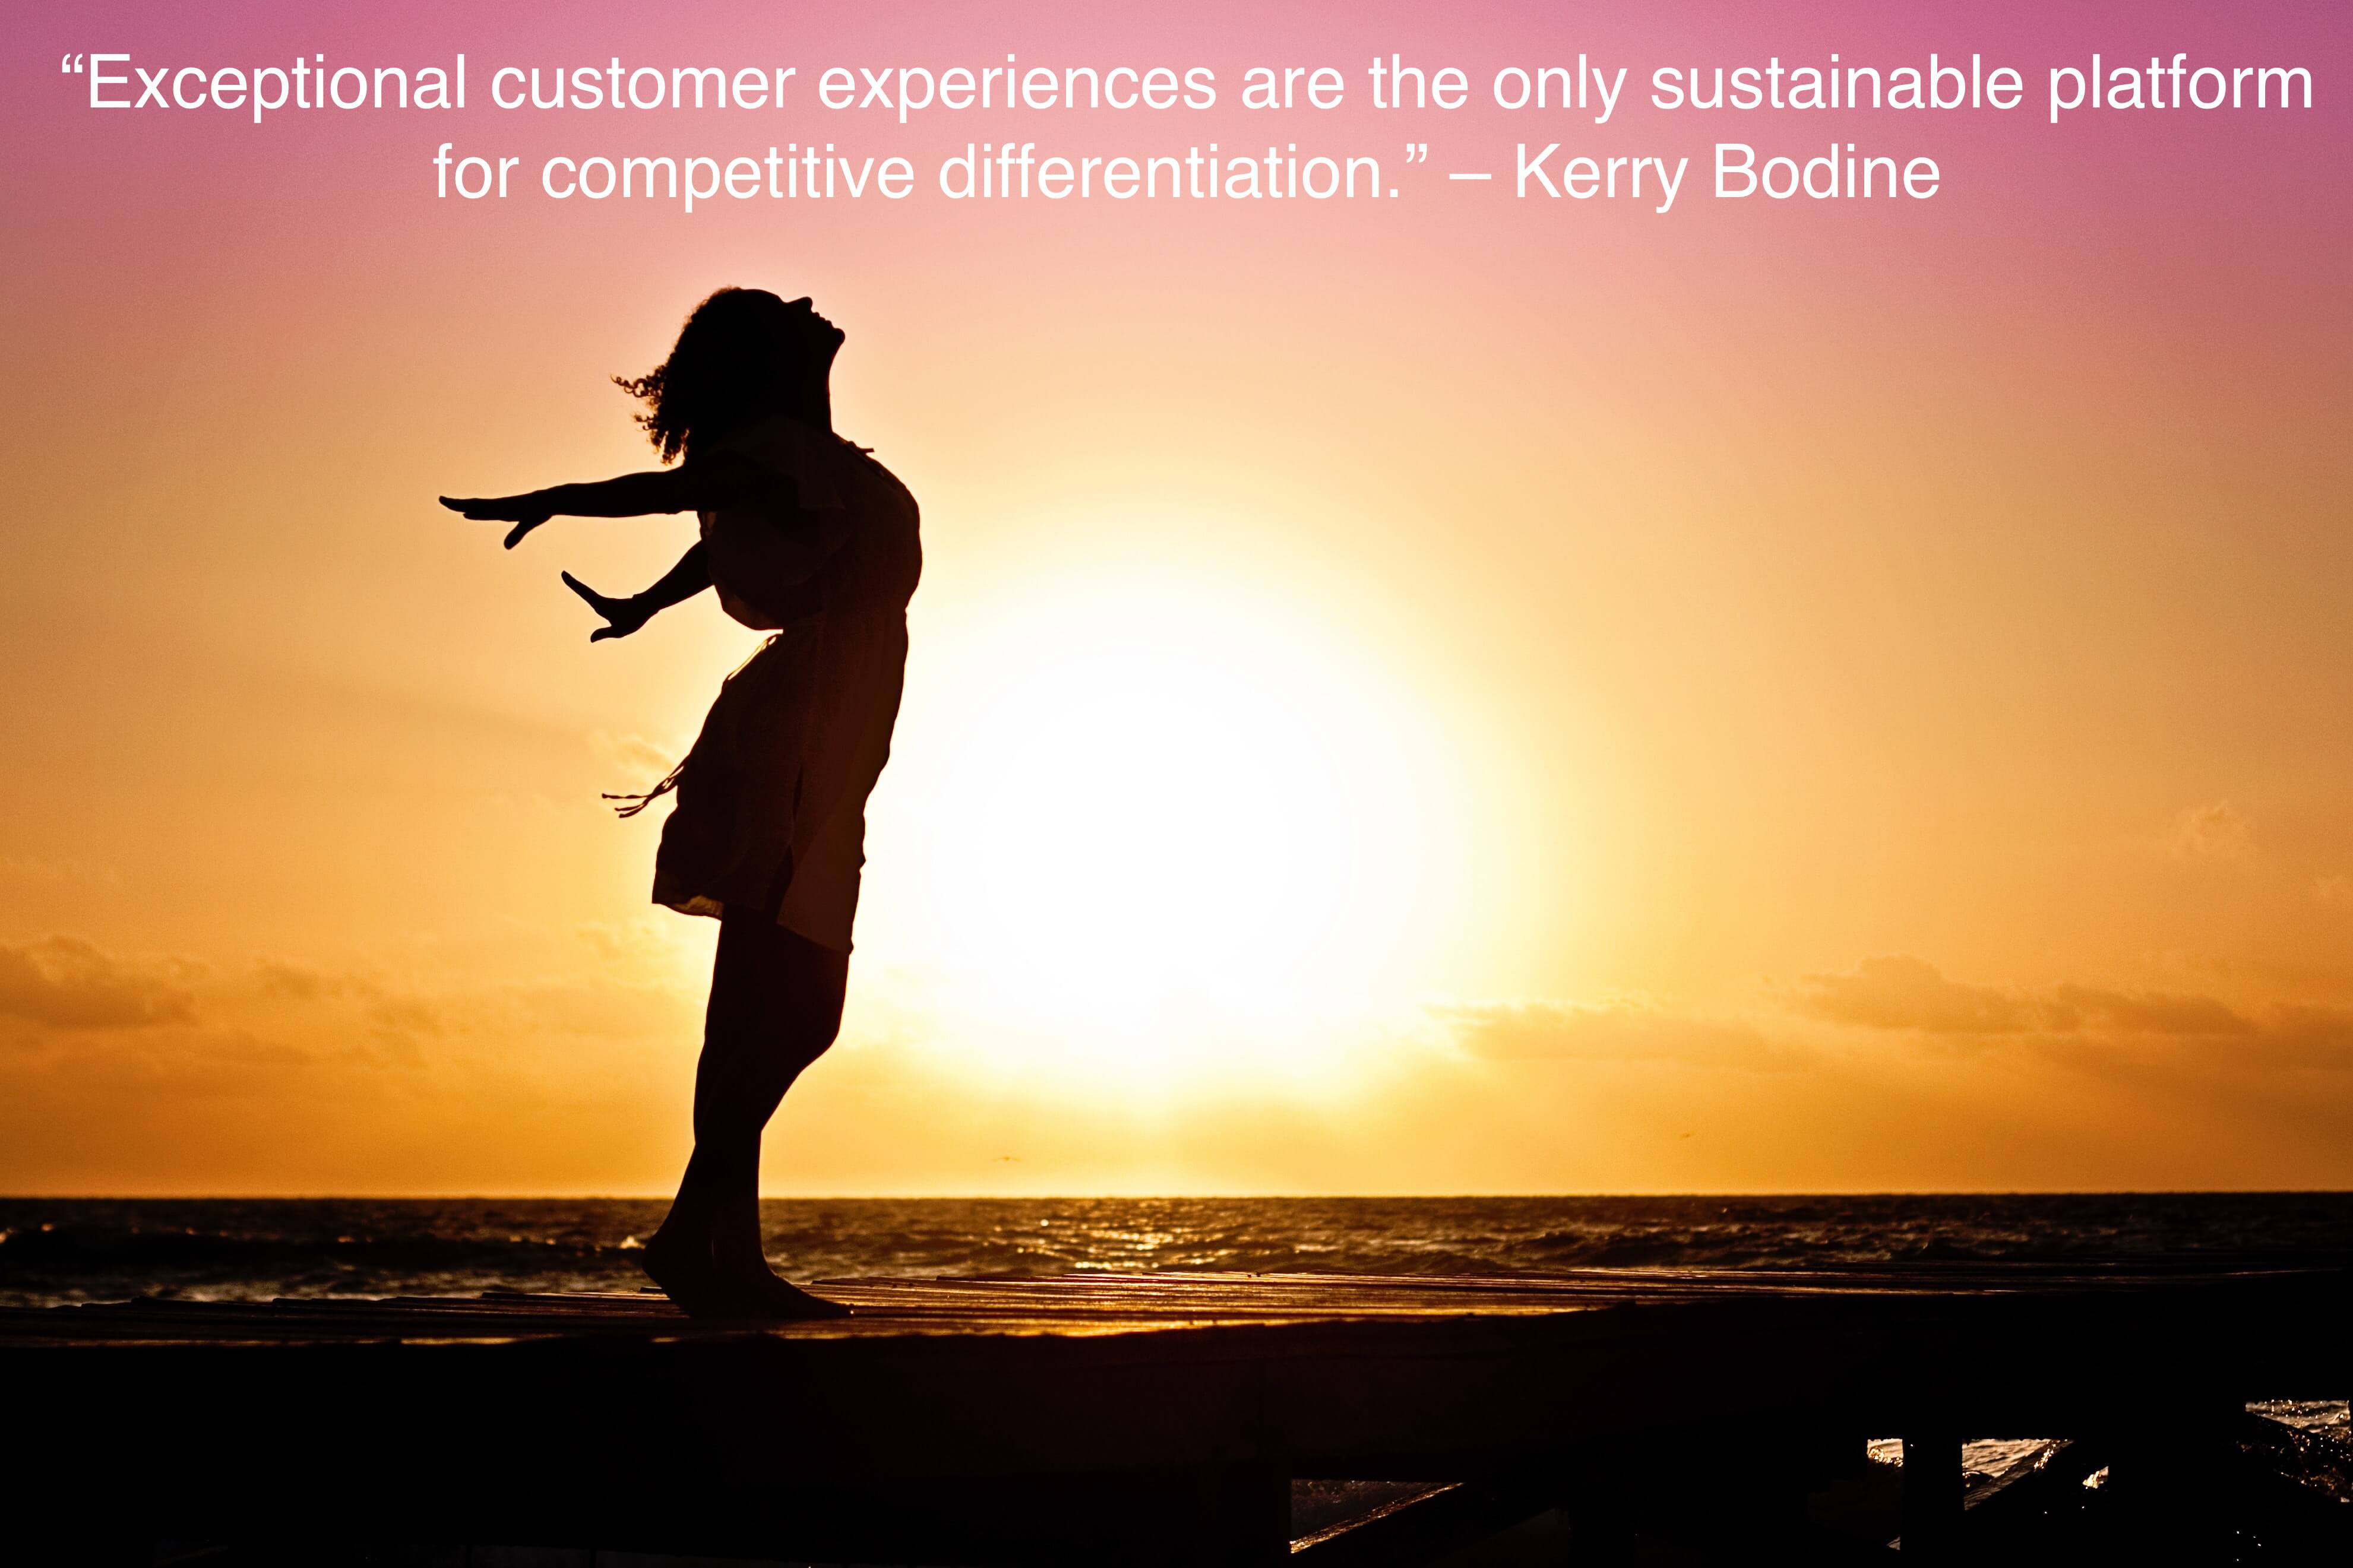 """Exceptional customer experiences are the only sustainable platform for competitive differentiation.""- quote by Kerry Bodine on customer experience"